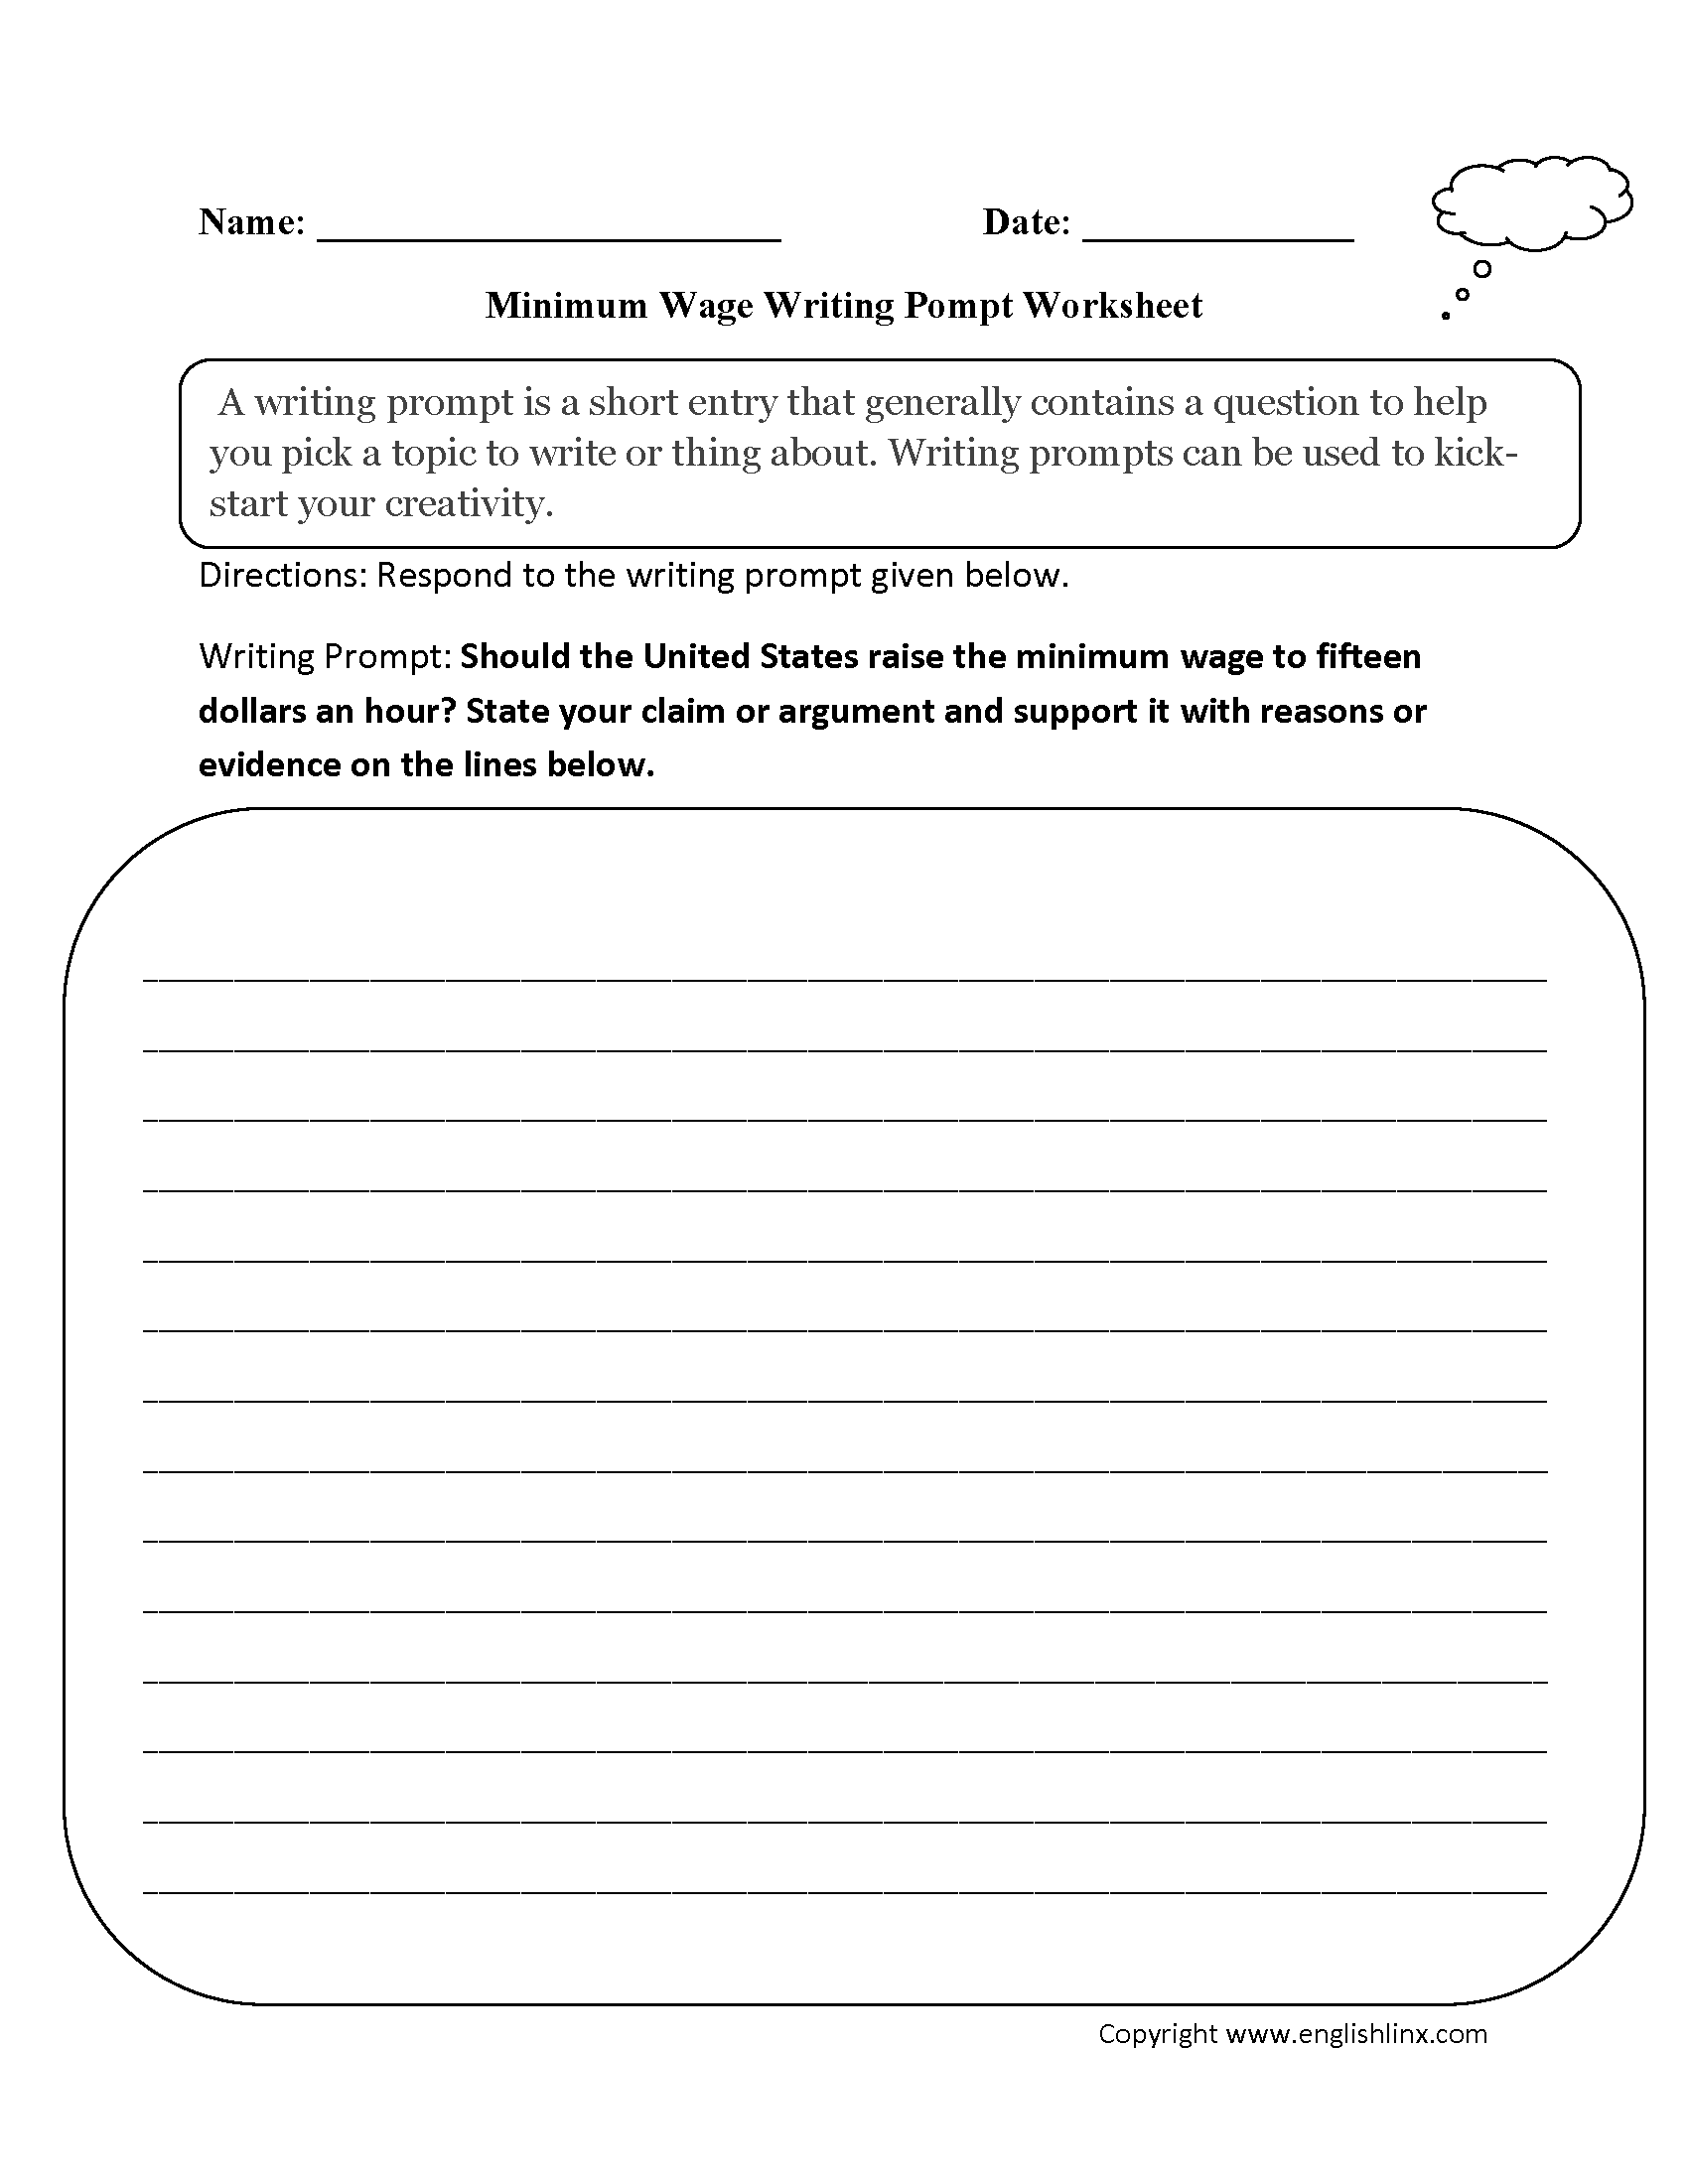 writing prompts worksheets argumentative writing prompts worksheets argumentative writing prompts worksheets